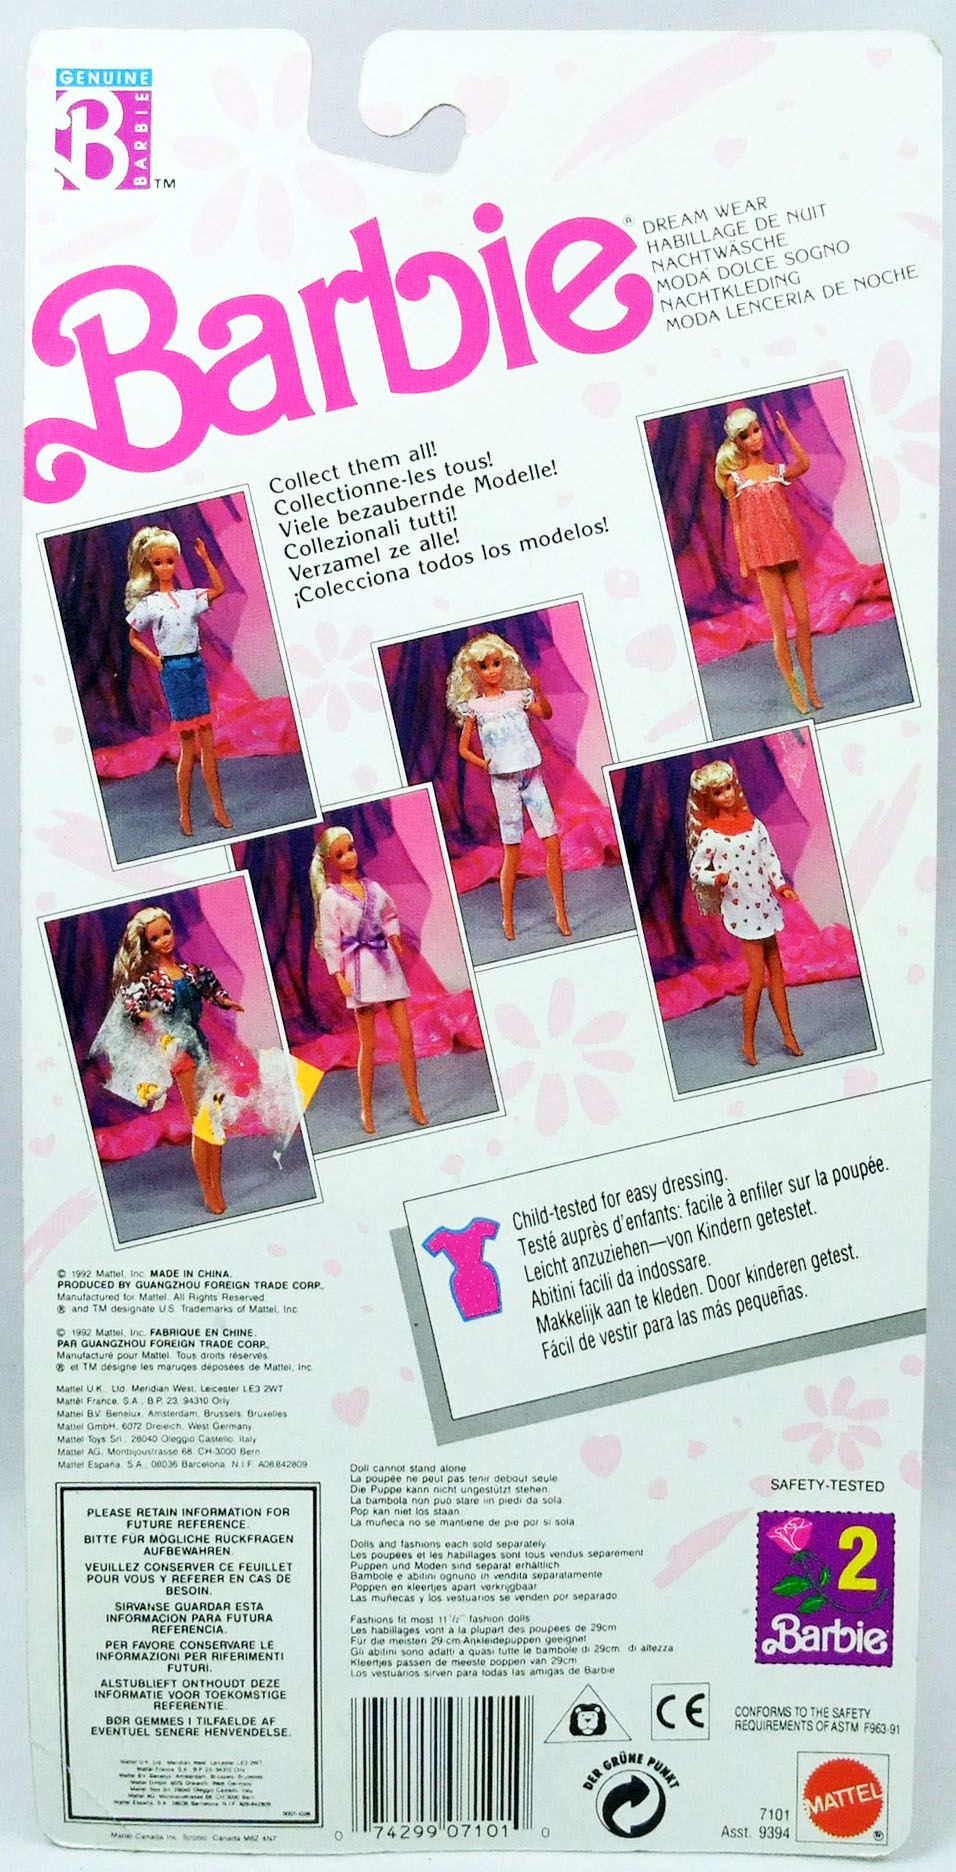 Barbie - Habillage de Nuit - Mattel 1992 (ref.7101)